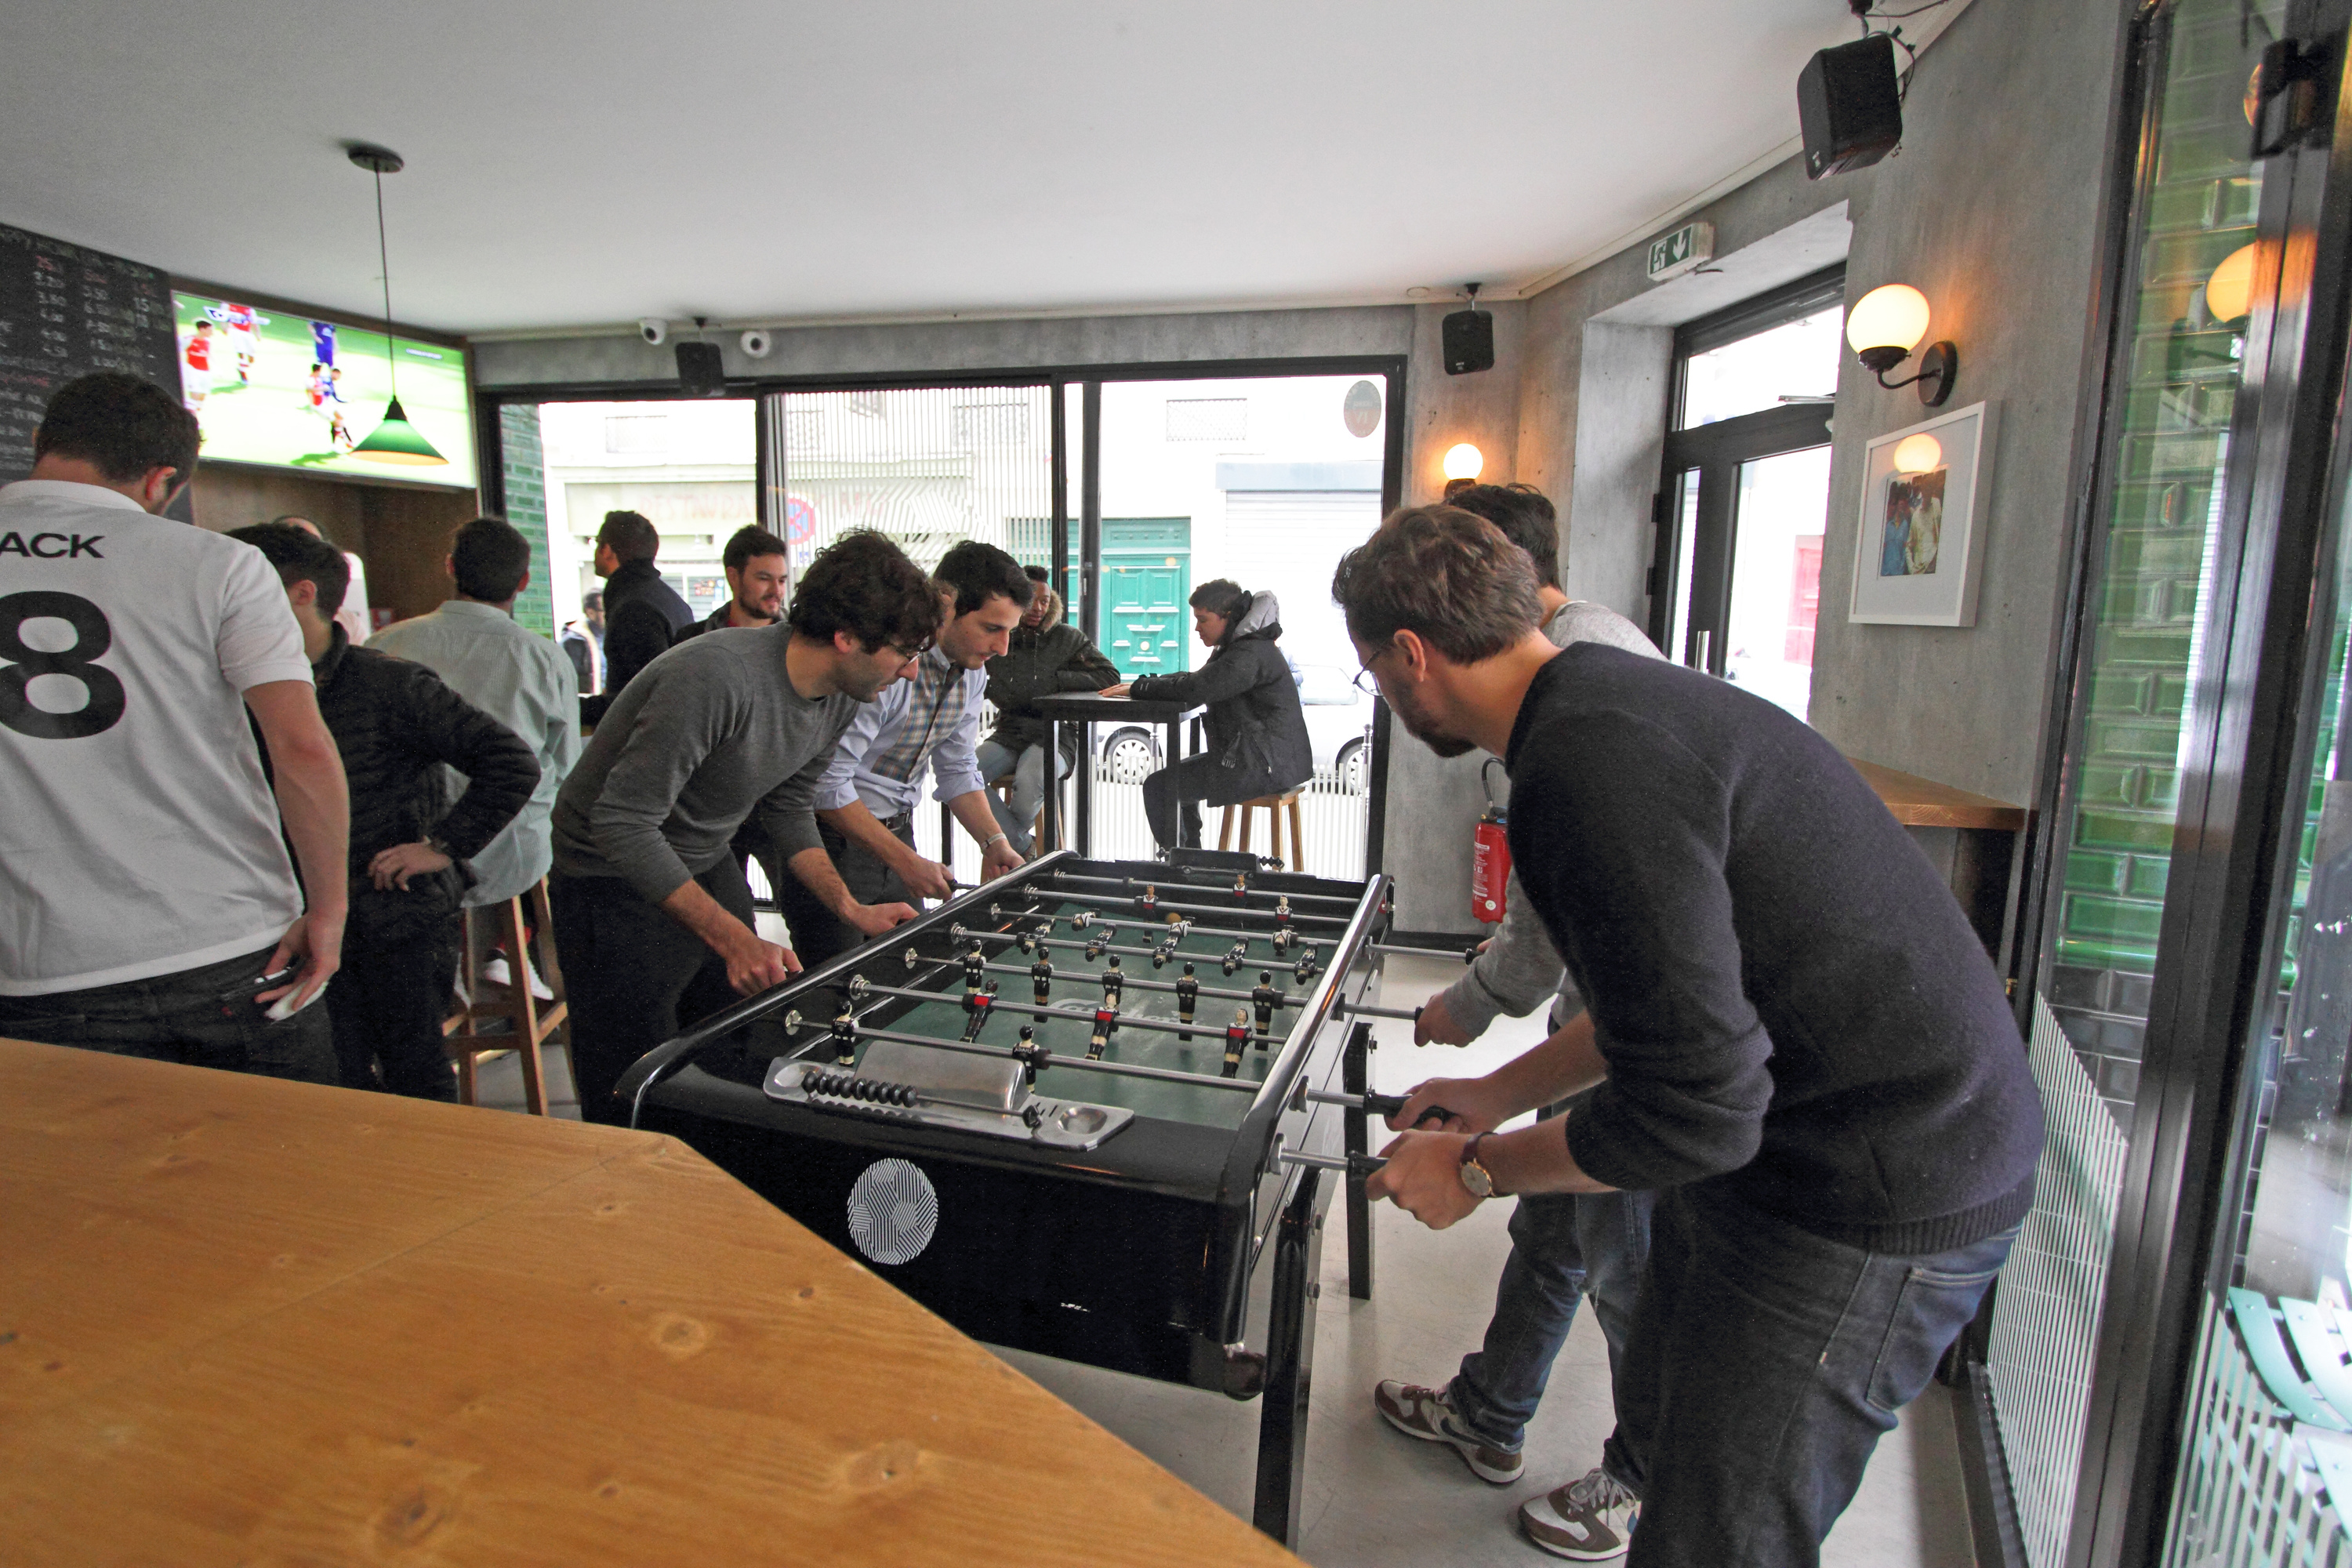 La Ballon sport bar football babyfoot